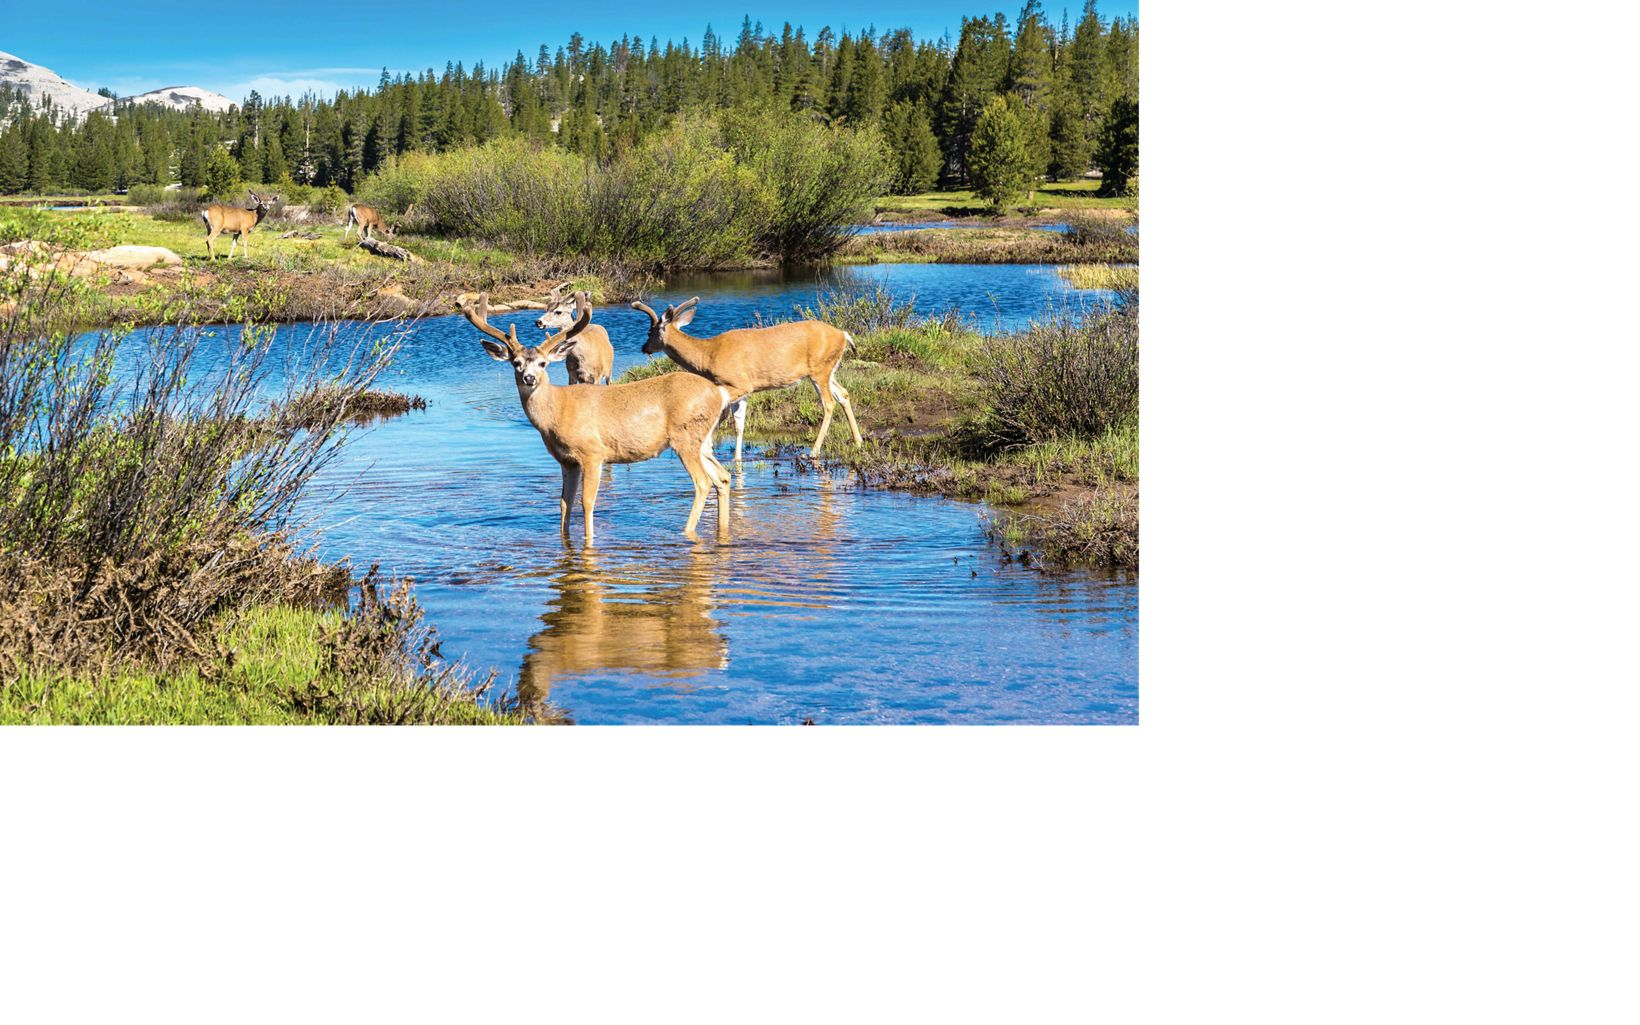 The work of the Rio Grande Water Fund is improving habitat for wildlife.